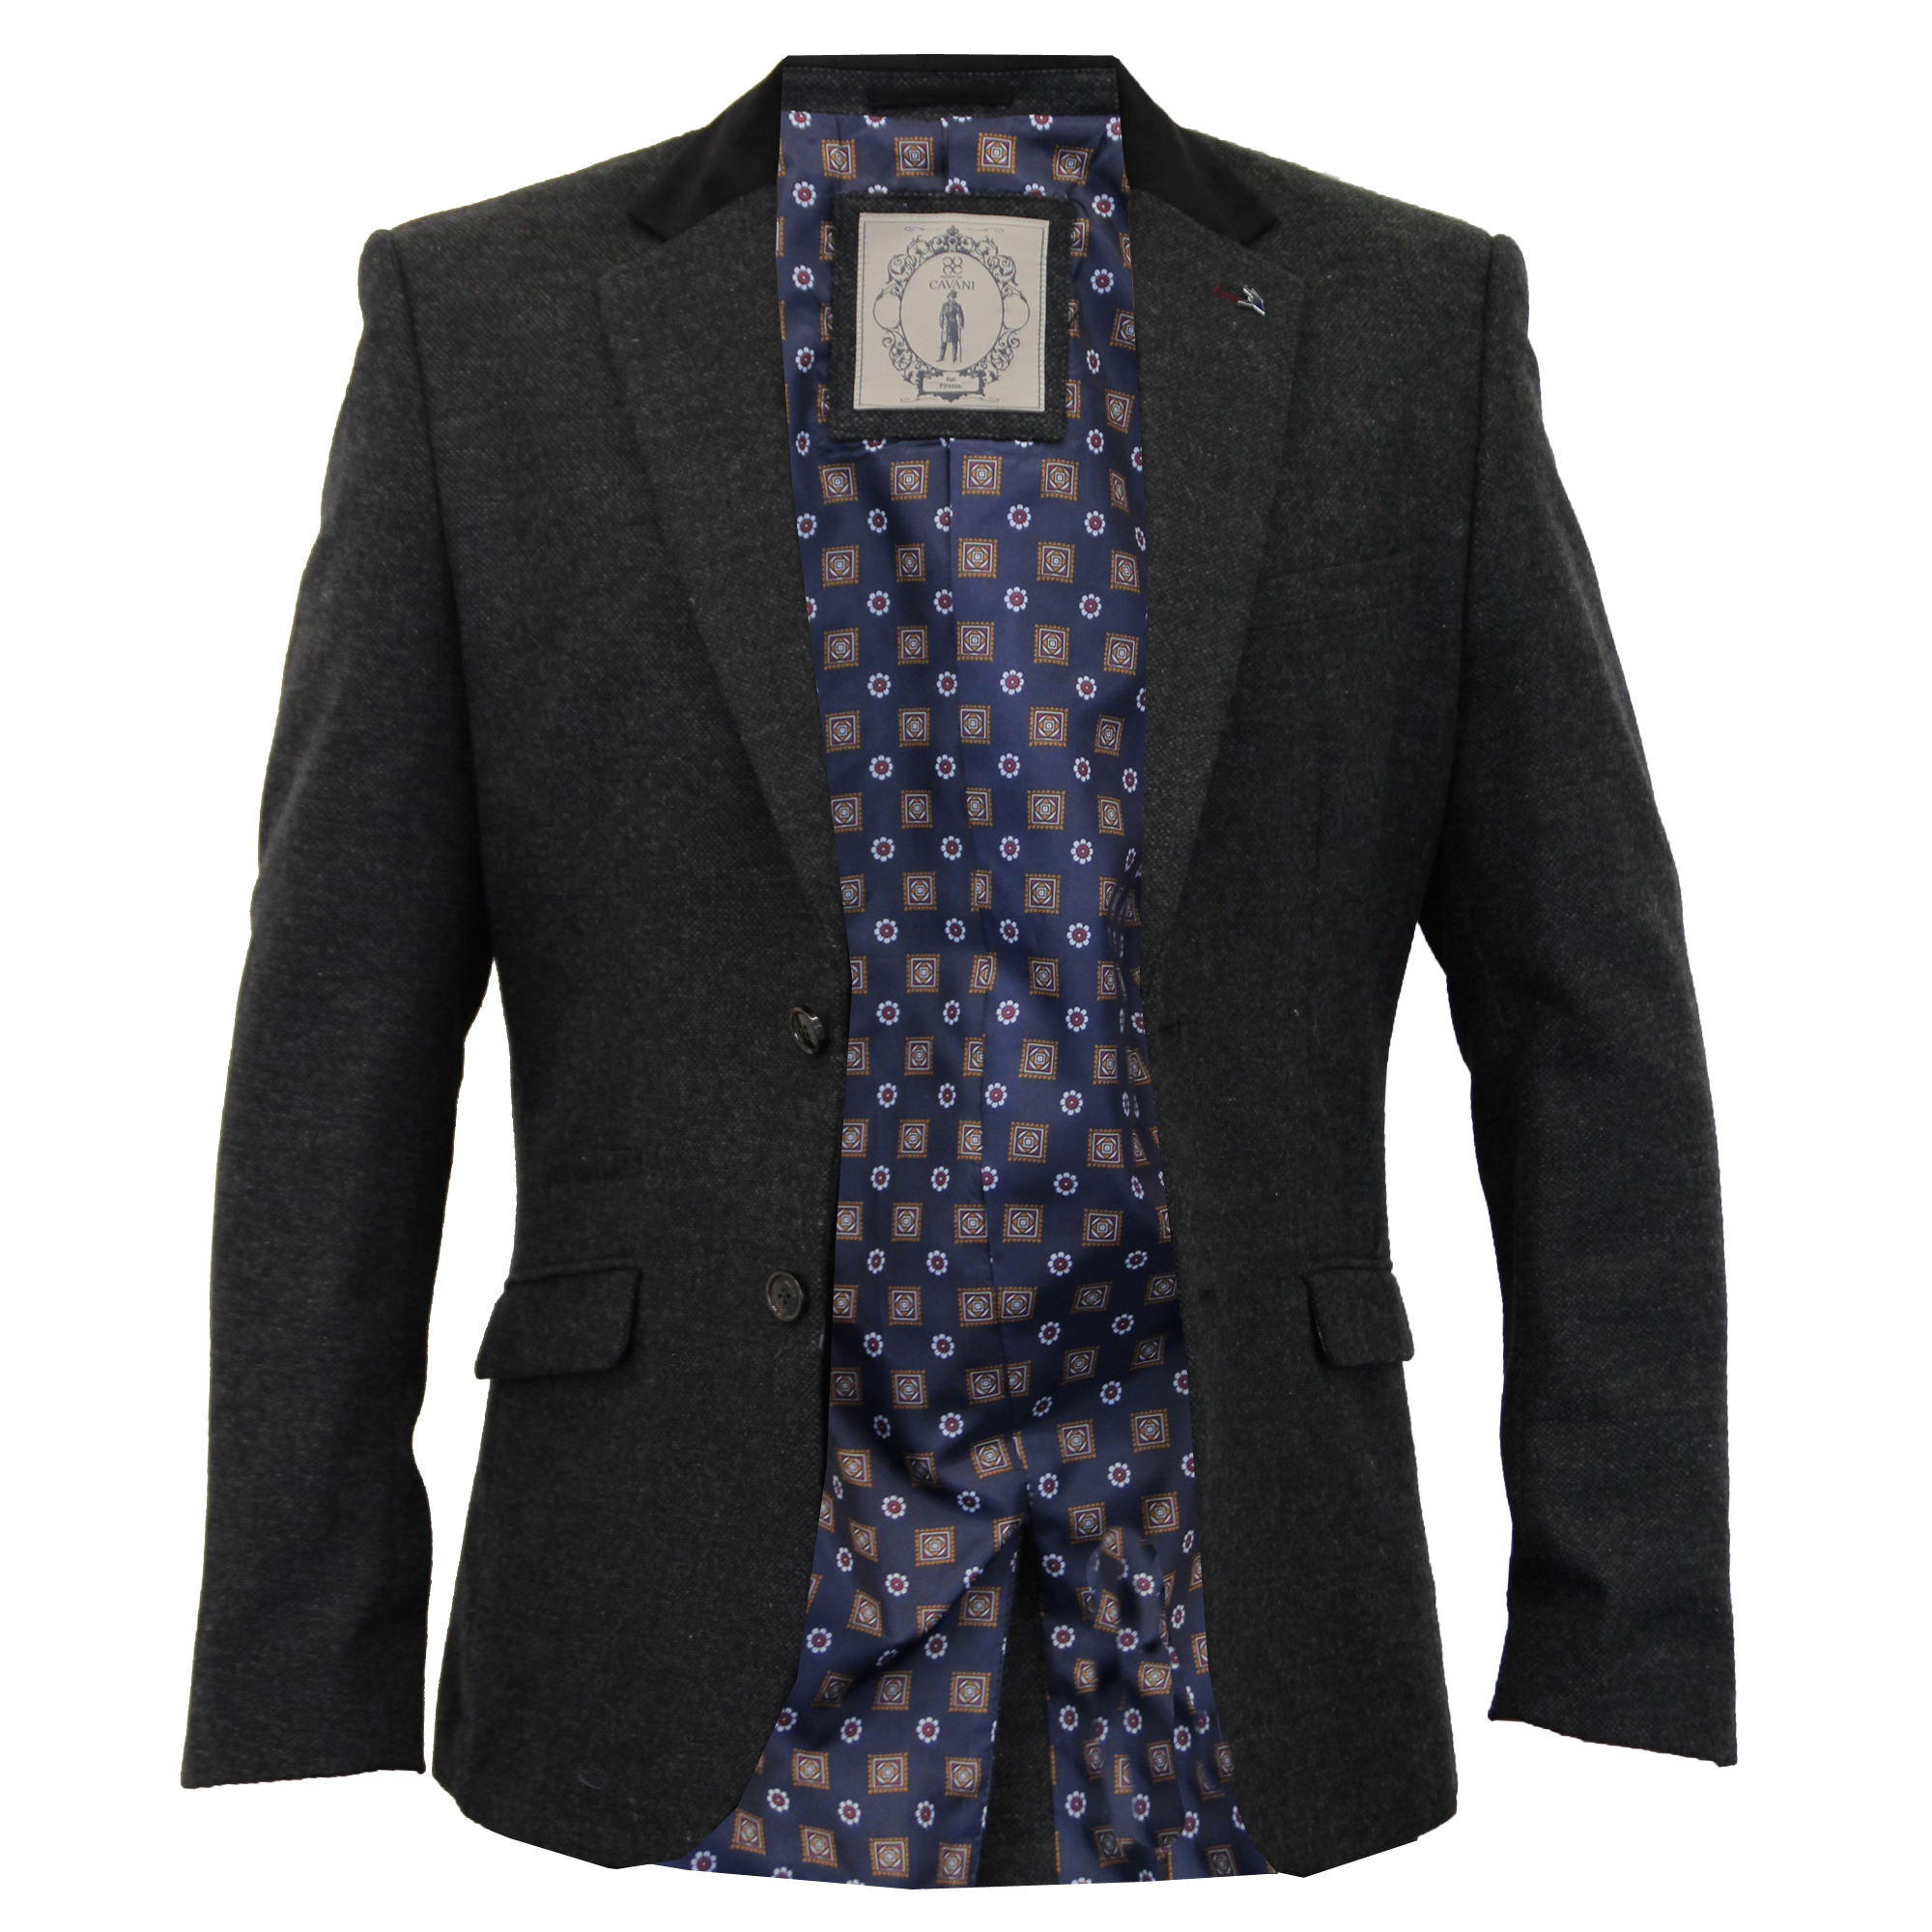 Shop Men's Blazers & Vests at ciproprescription.ga Find jackets, suit vests and blazers for men, in linen, cotton, wool, cashmere & more! Ludlow Slim-fit unstructured suit jacket in English wool-cotton twill $ available in 2 colors. QUICK SHOP. Ludlow blazer in herringbone English tweed $ available in .